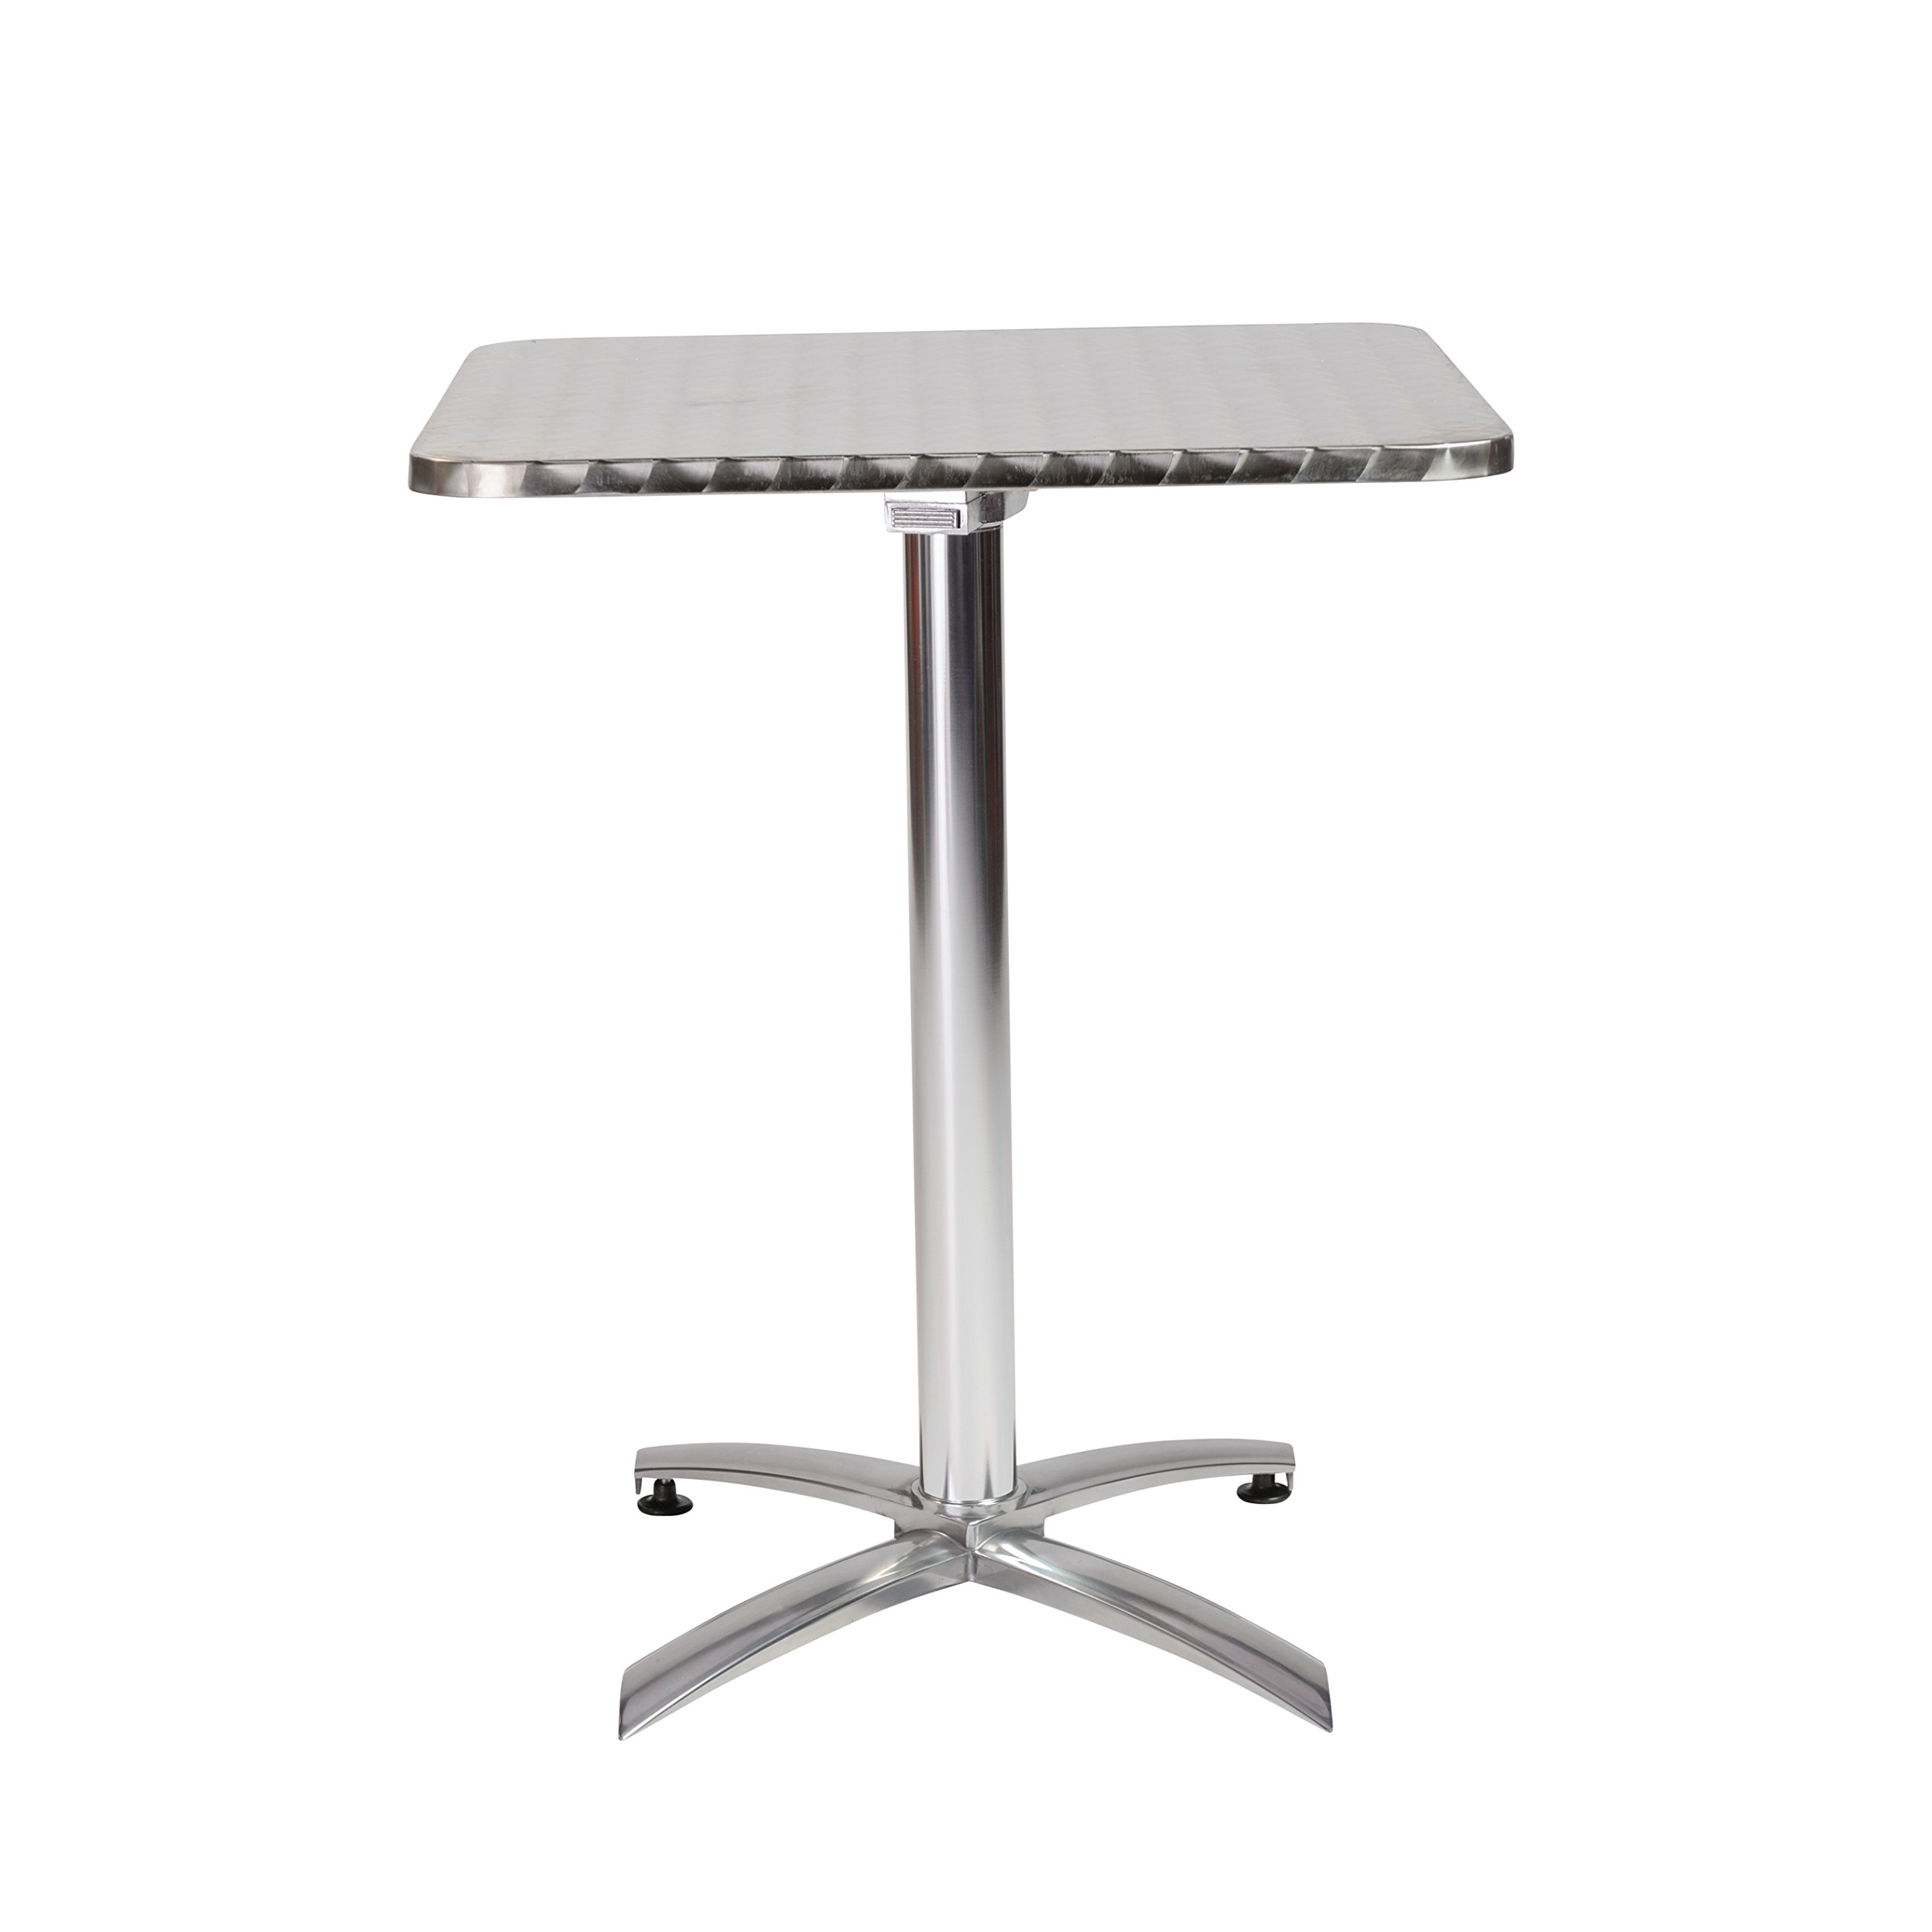 Eurø Style Arden SquareTextured Stainless Top Indoor/Outdoor Foldable Bistro Table with Aluminum Base by Eurø Style